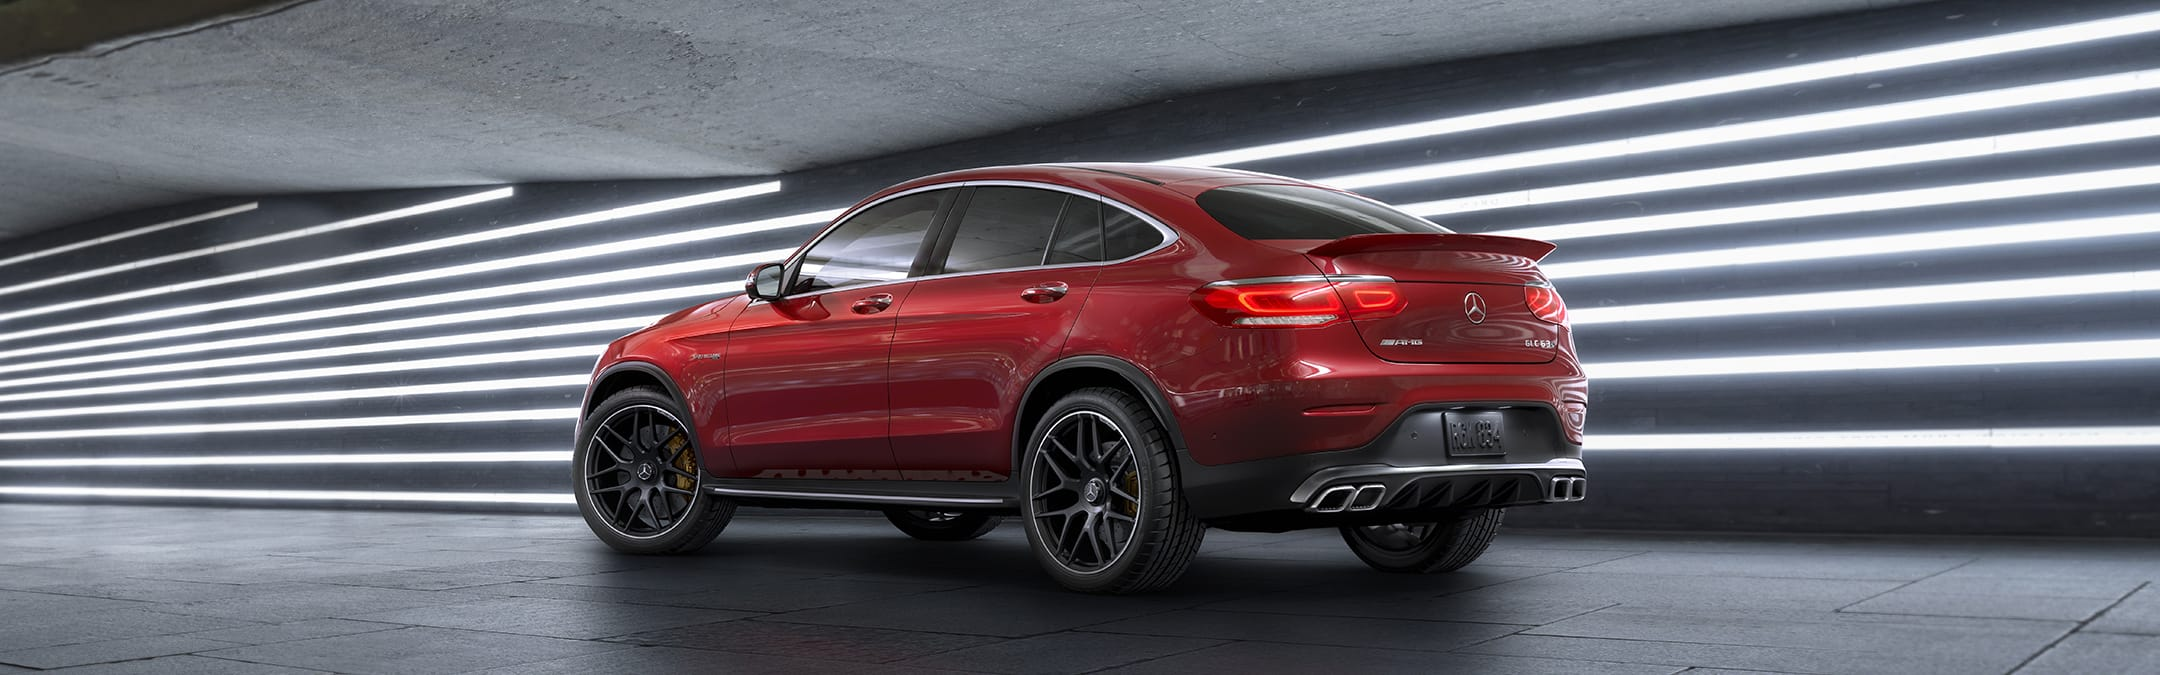 The Amg Glc Coupe Suv Mercedes Benz Canada